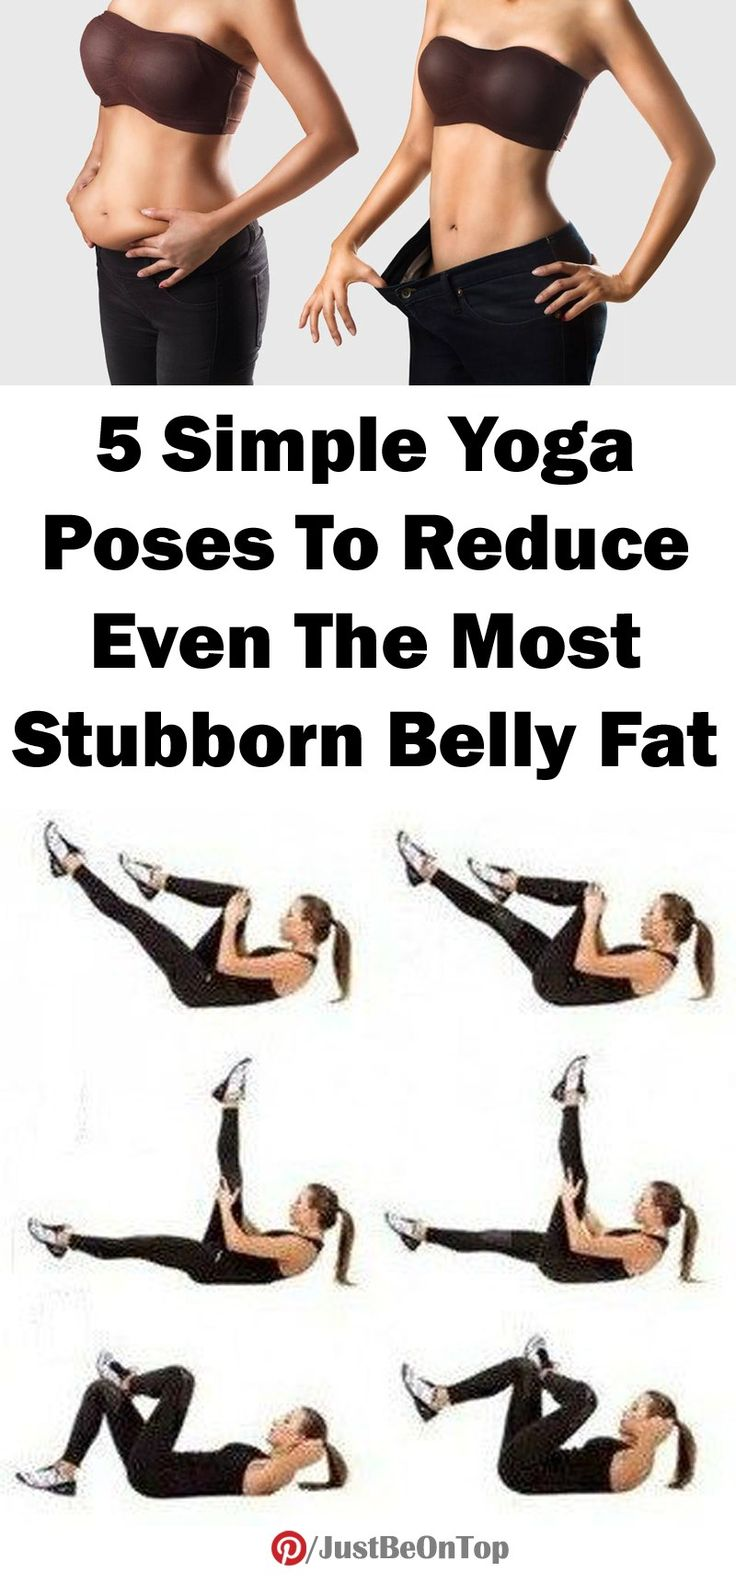 5 SIMPLE YOGA POSES TO REDUCE THE EVEN STUBBORN BELLY FAT | Just Be On Top